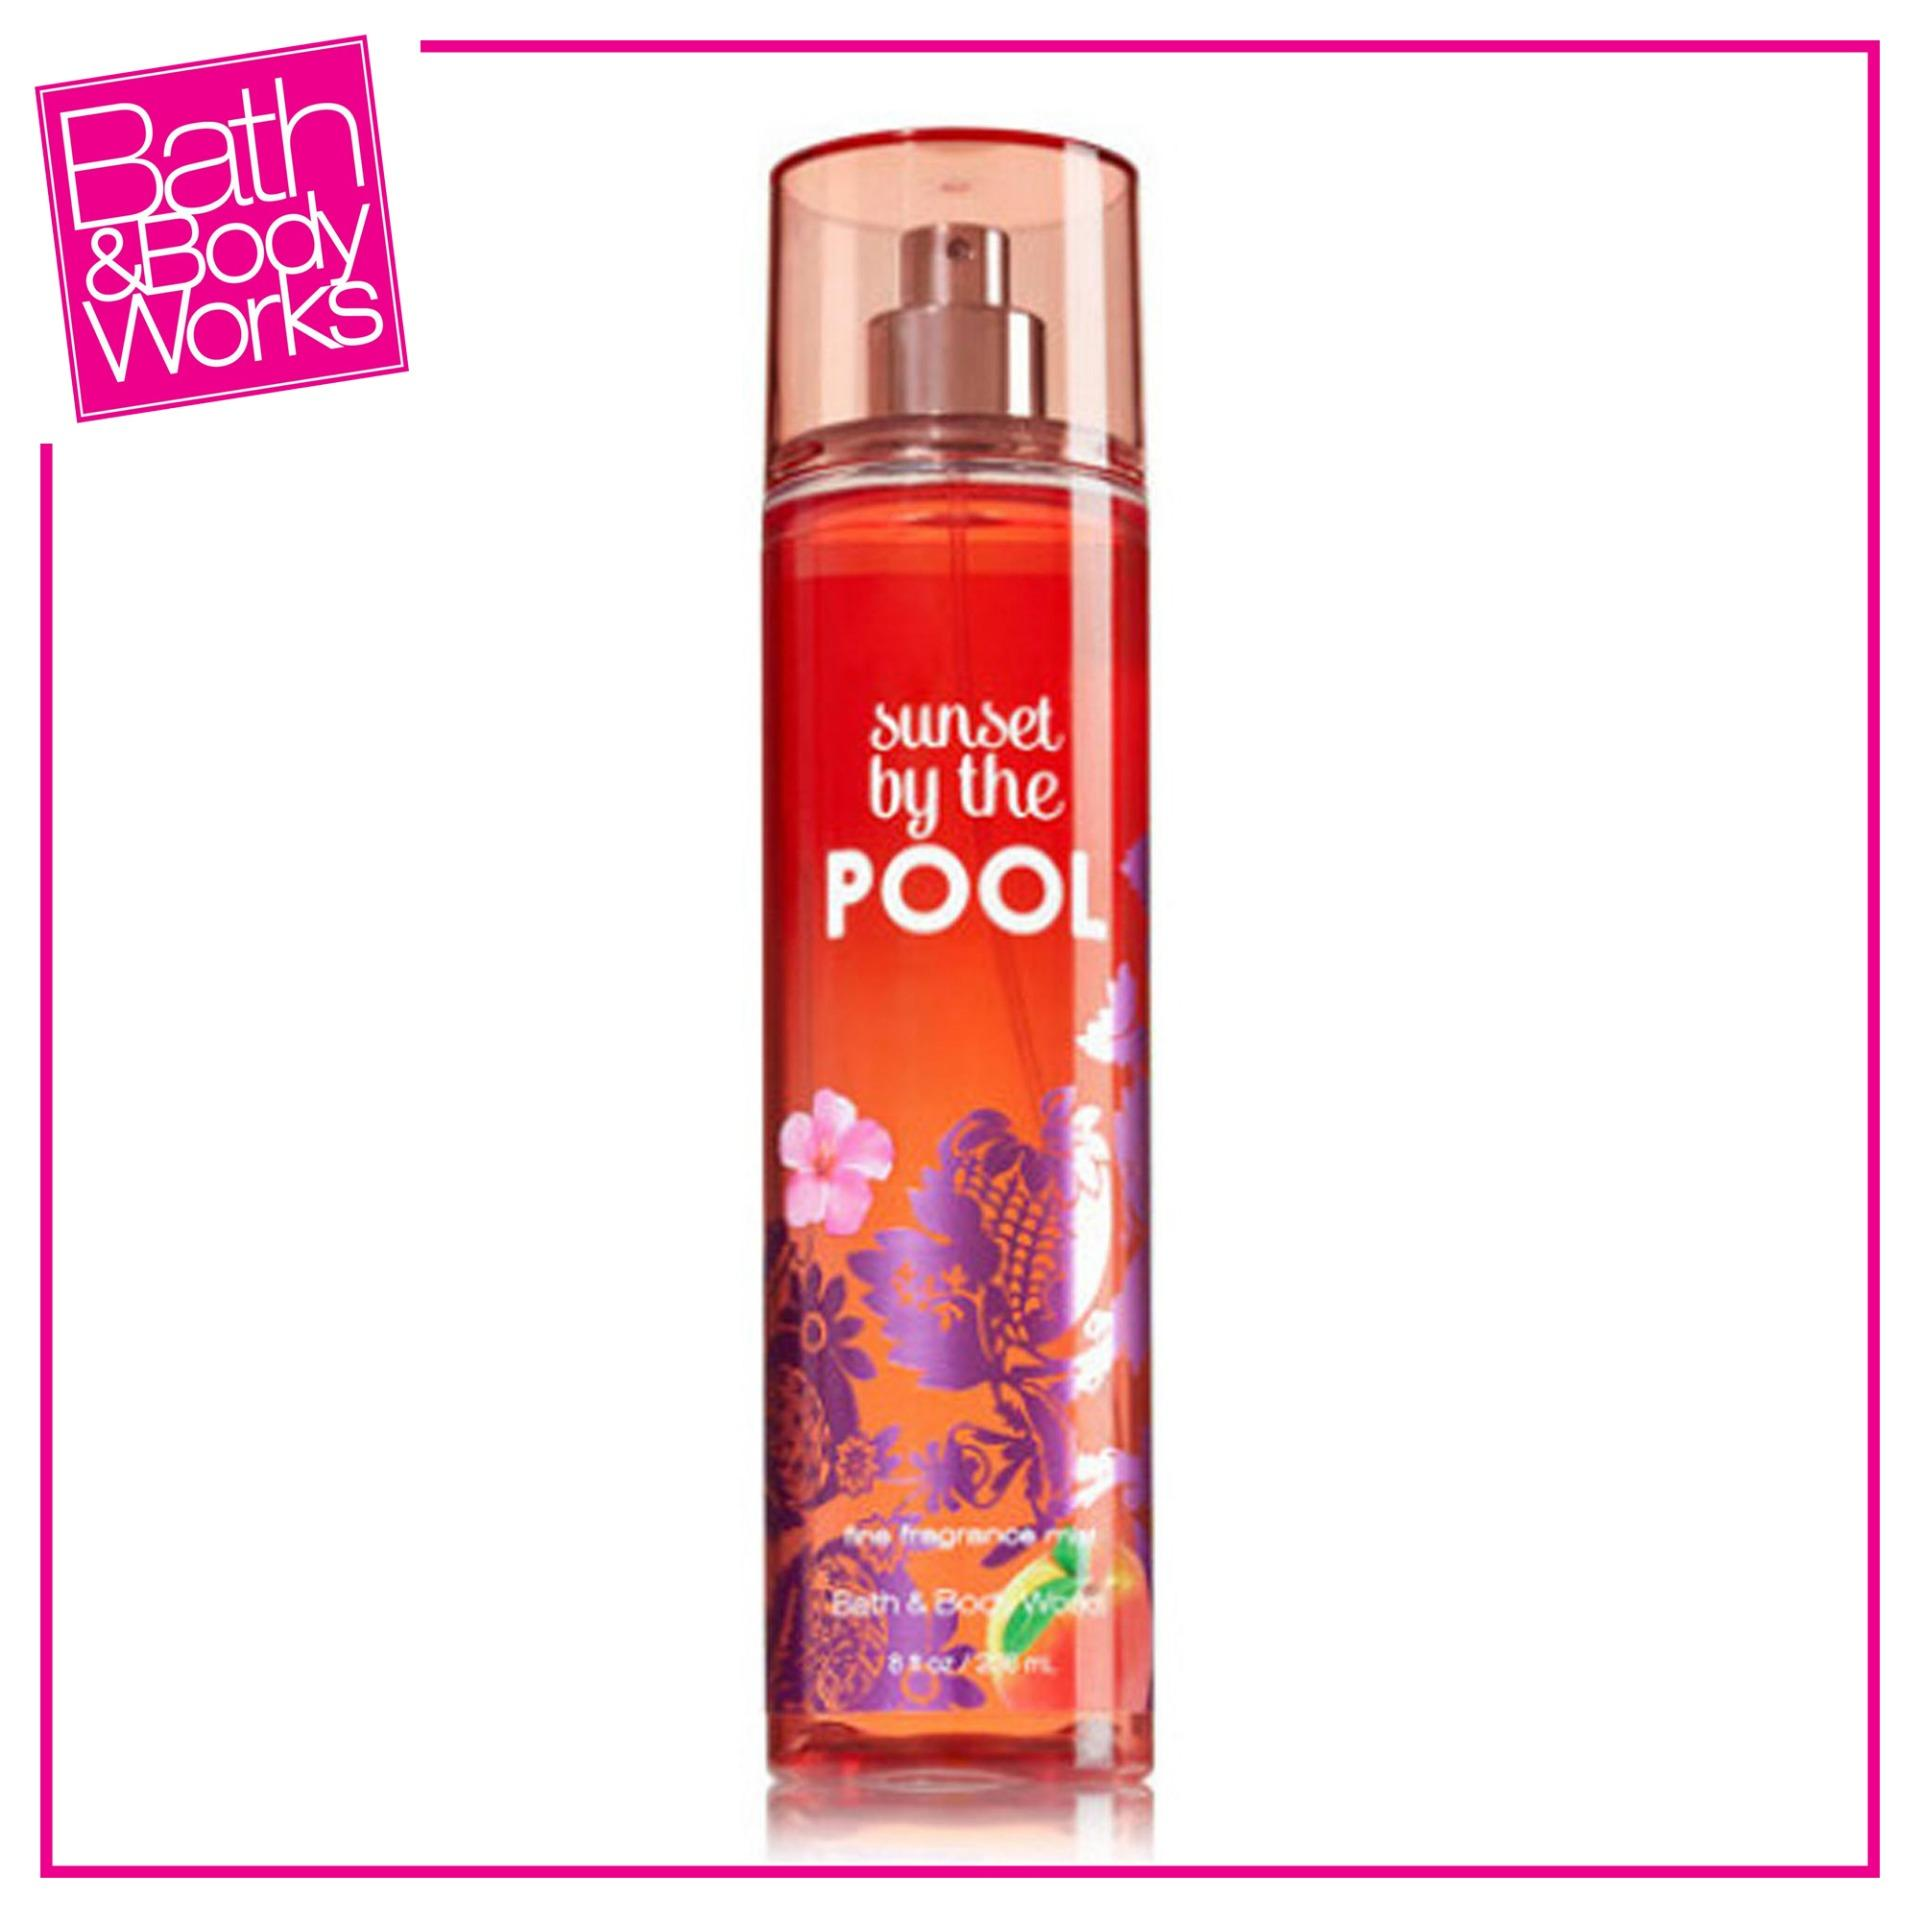 Bath & Body Works Fine Fragrance Mist Sunset by the Pool 236ml